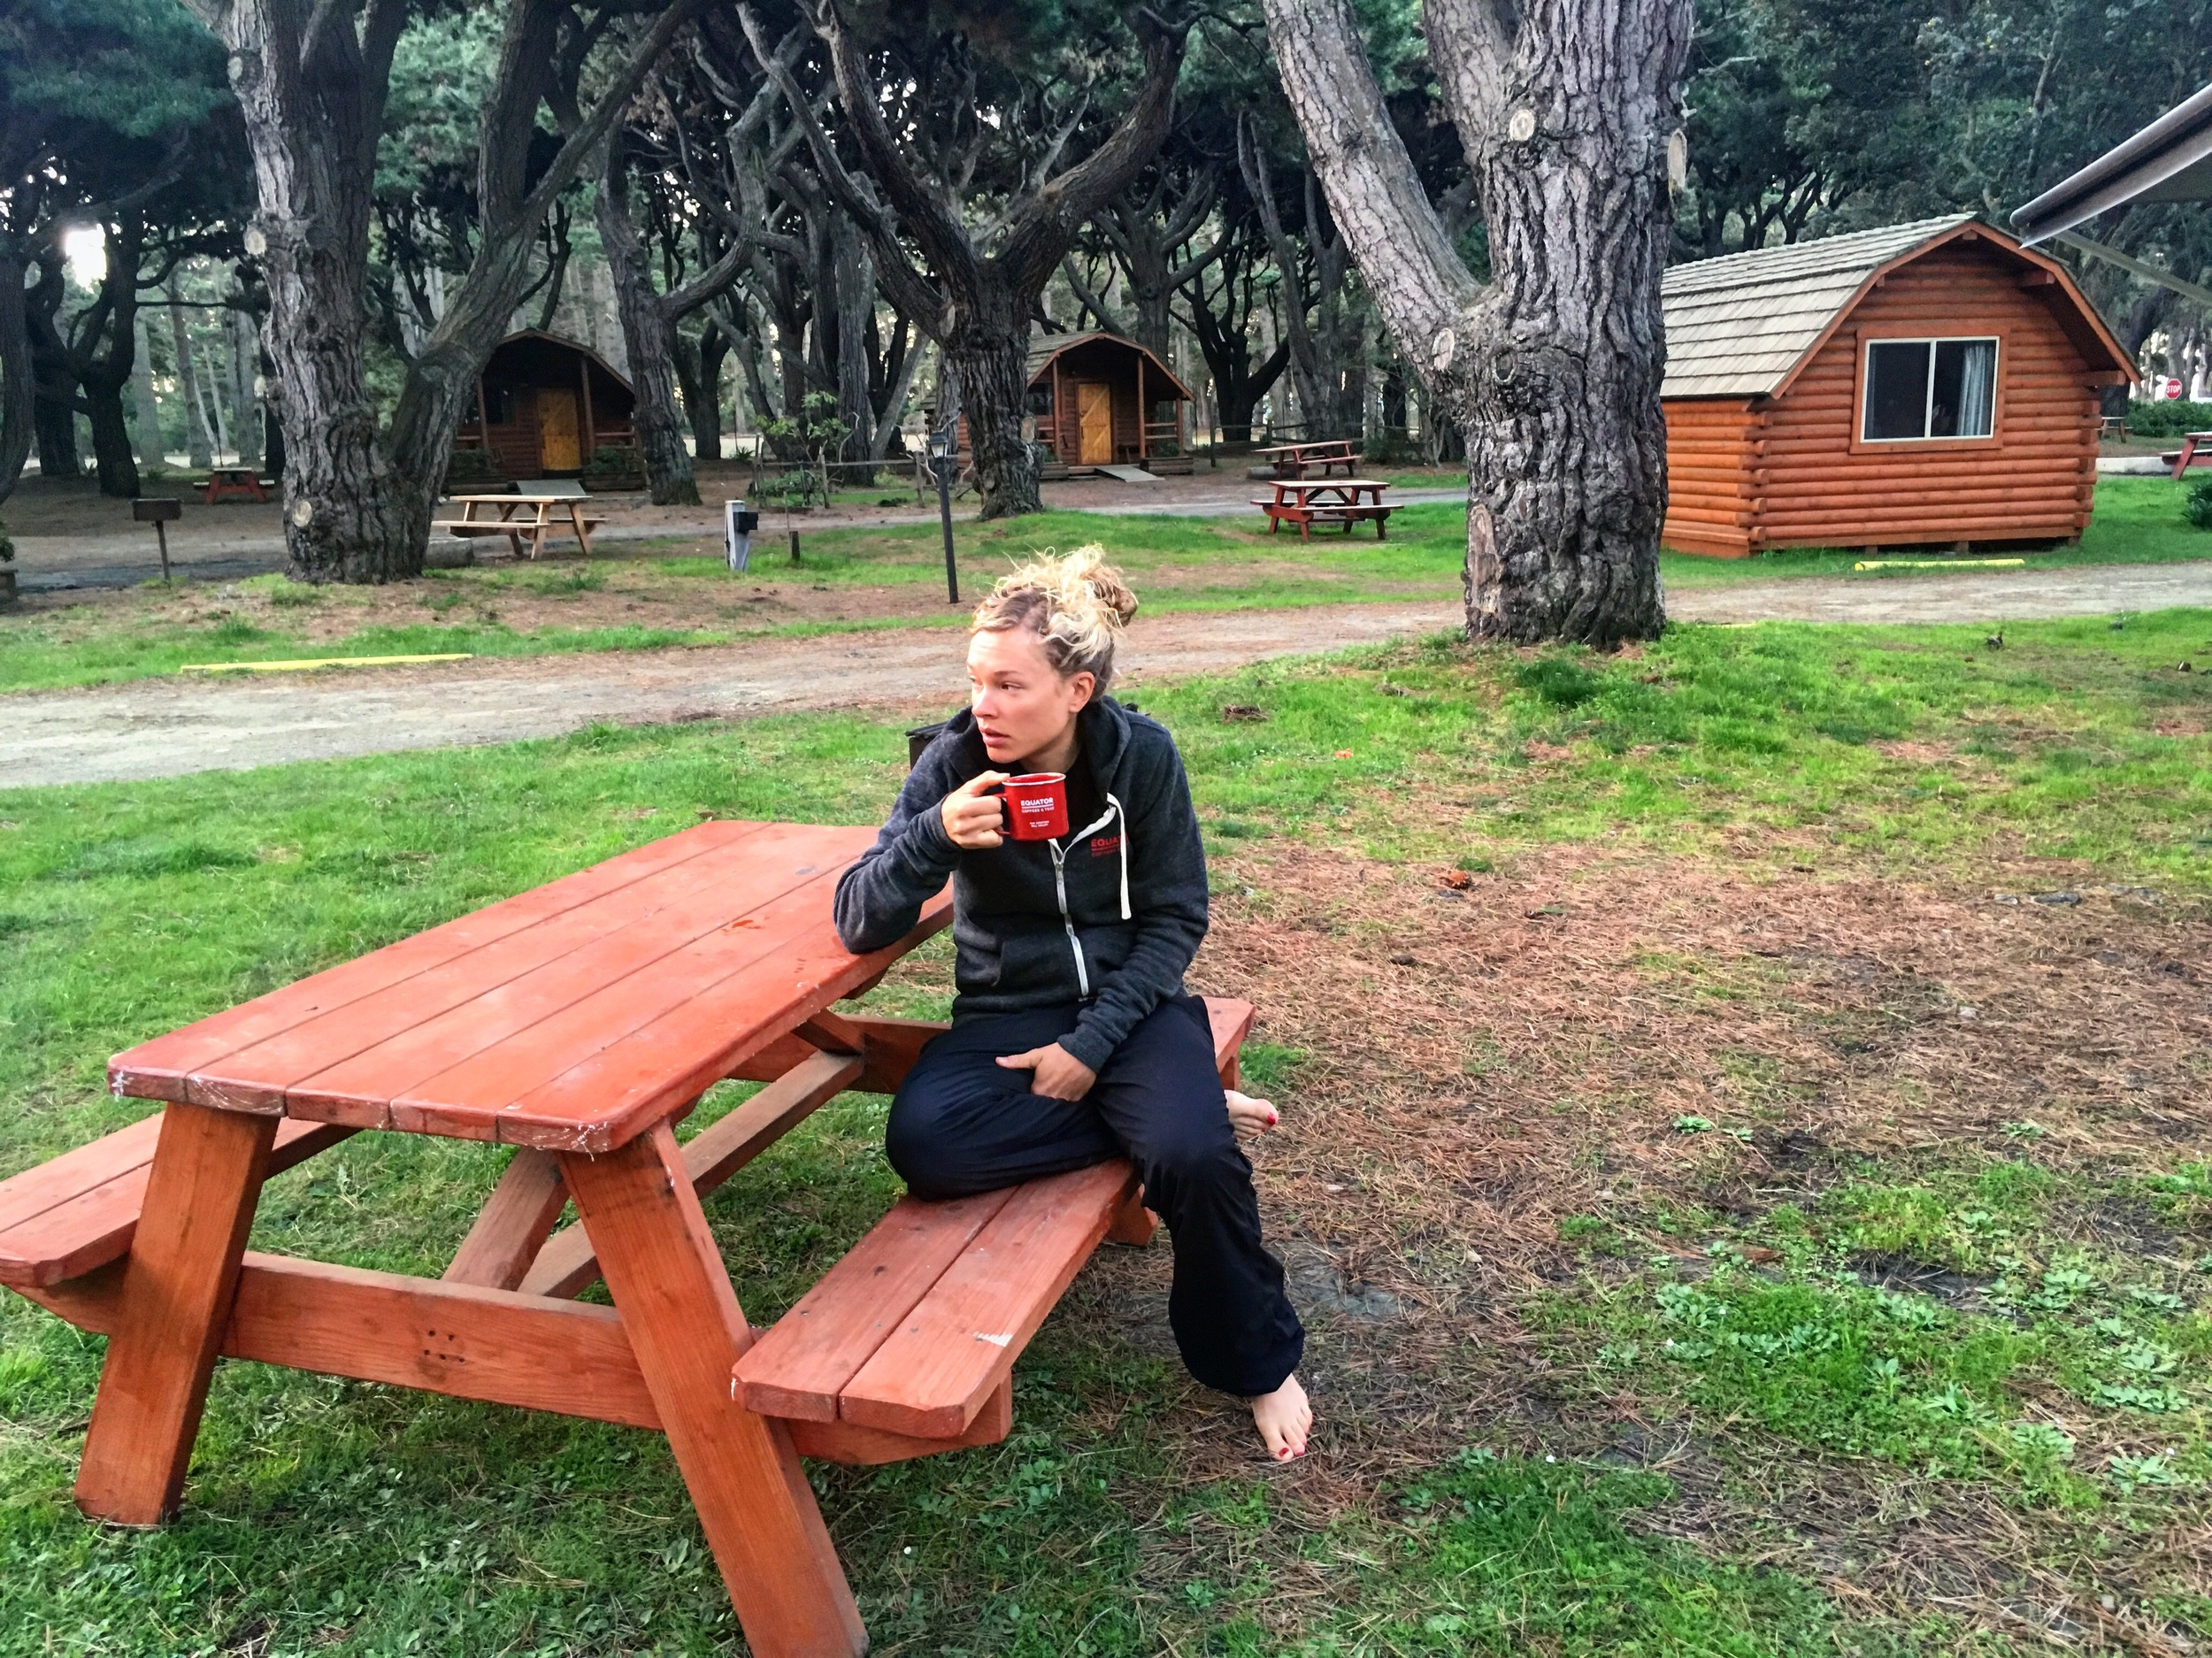 Waking up with some Equator Coffee  Tayler Wiles Blend ! Loved this campsite! KOAs are the way to go!